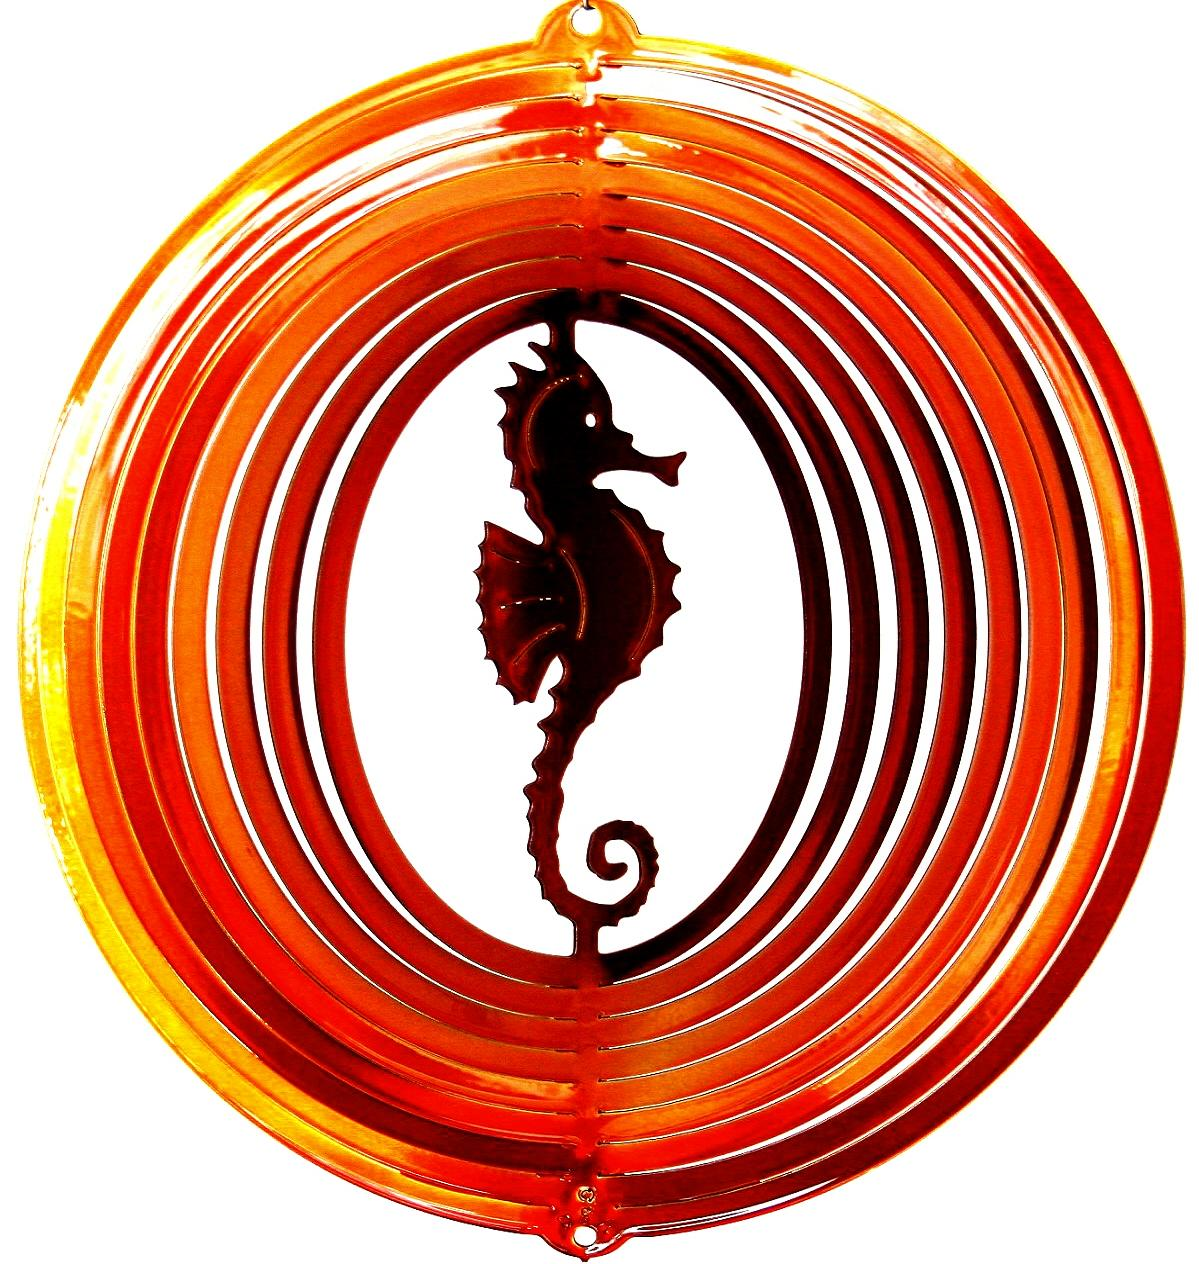 12 INCH SEAHORSE WIND SPINNER